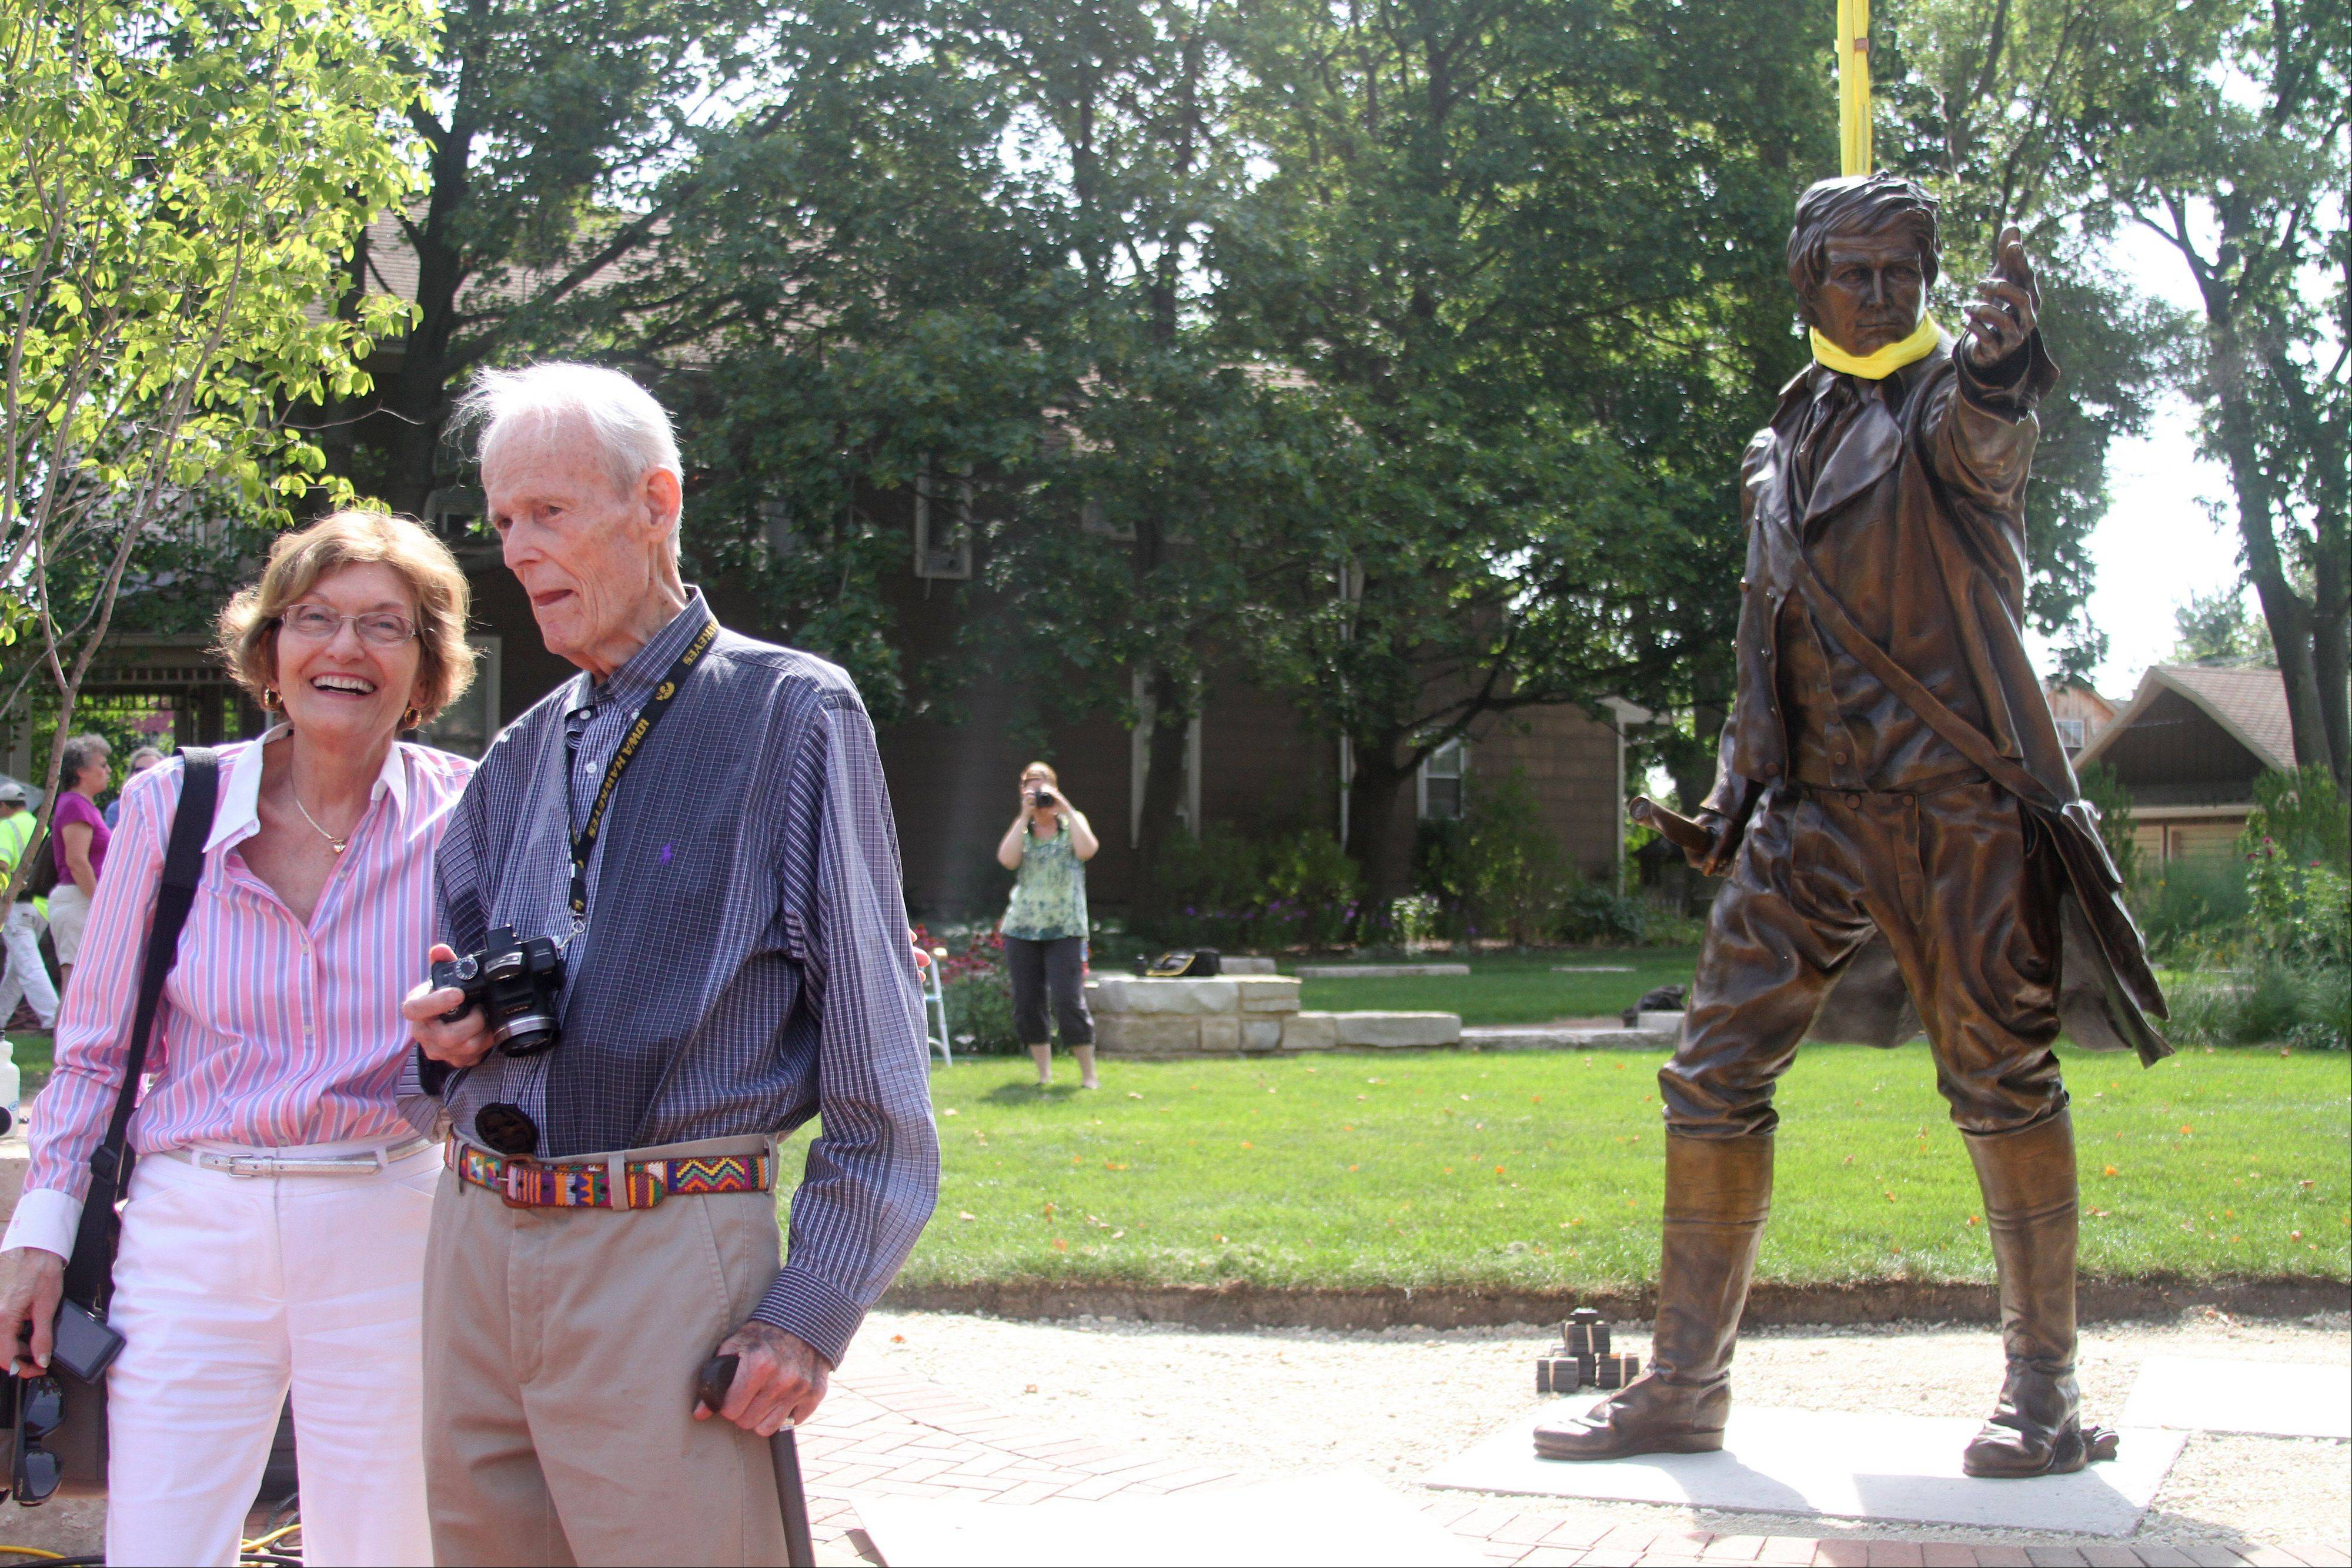 Cartoonist Dick Locher of Naperville and his wife, Mary, attend the installation of a sculpture of Joseph Naper, which Locher sketched and designed. The sculpture of Naperville's founder will be installed at 4 p.m. Friday at the Naper Homestead Historic Site at Mill Street and Jefferson Avenue.